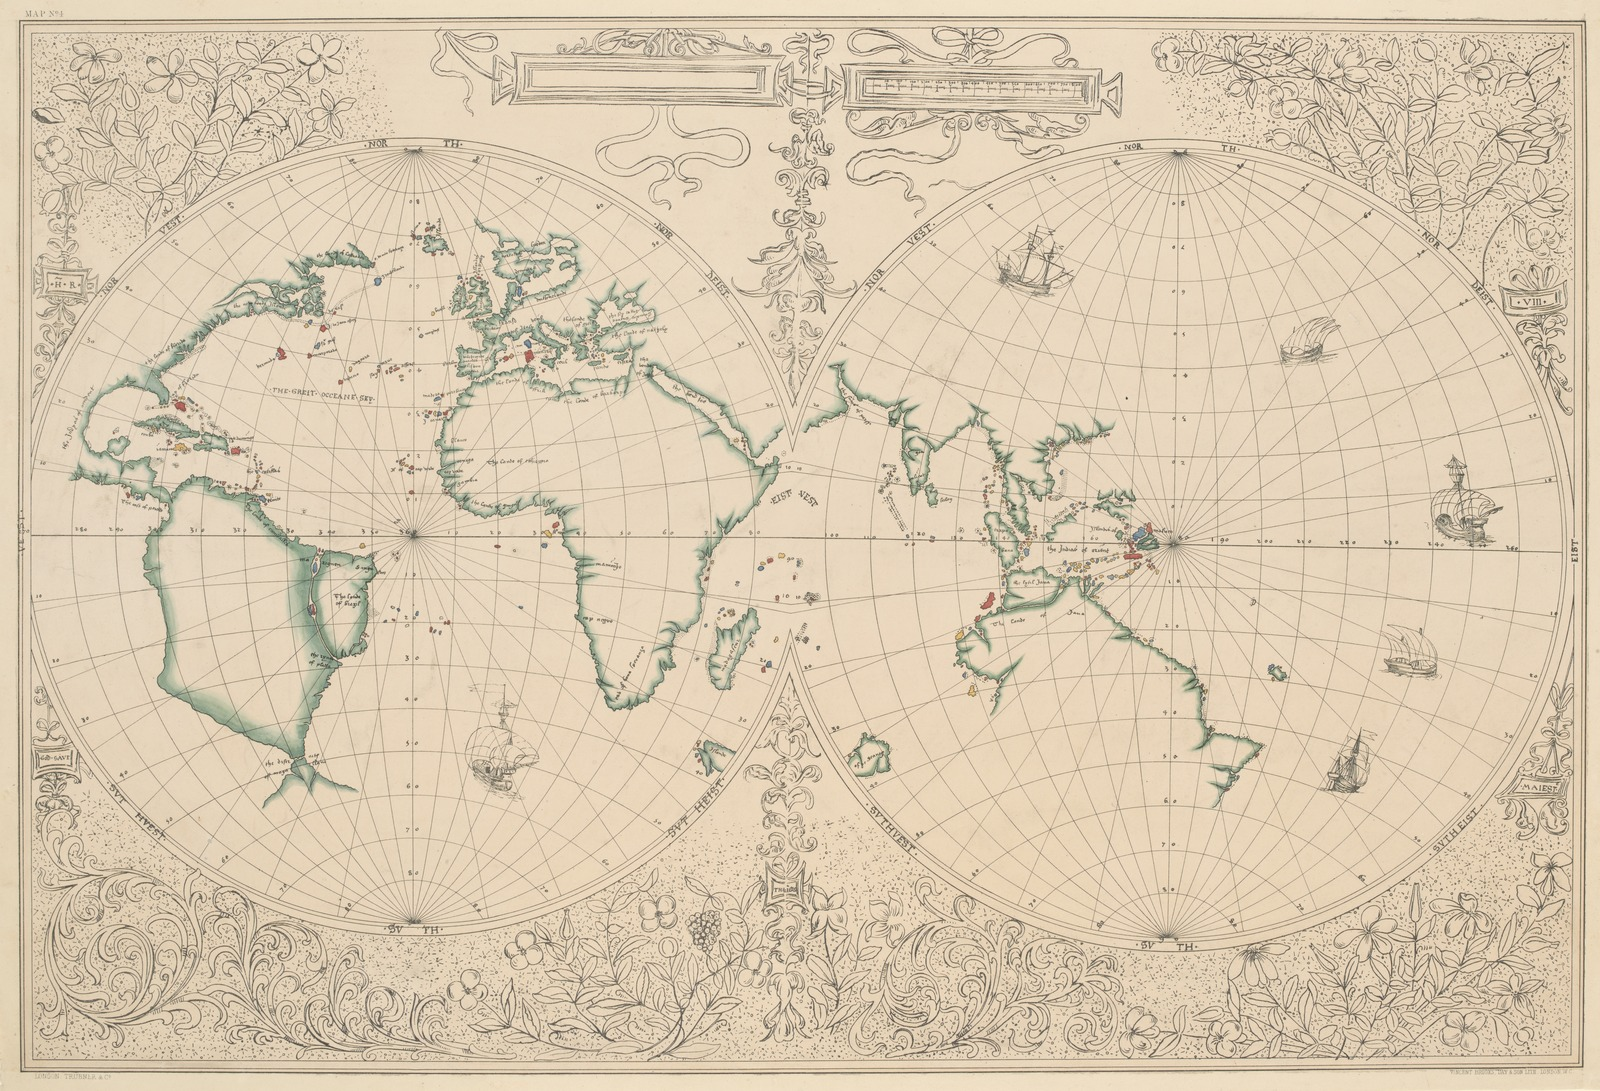 Old map of western and eastern hemispheres of the world